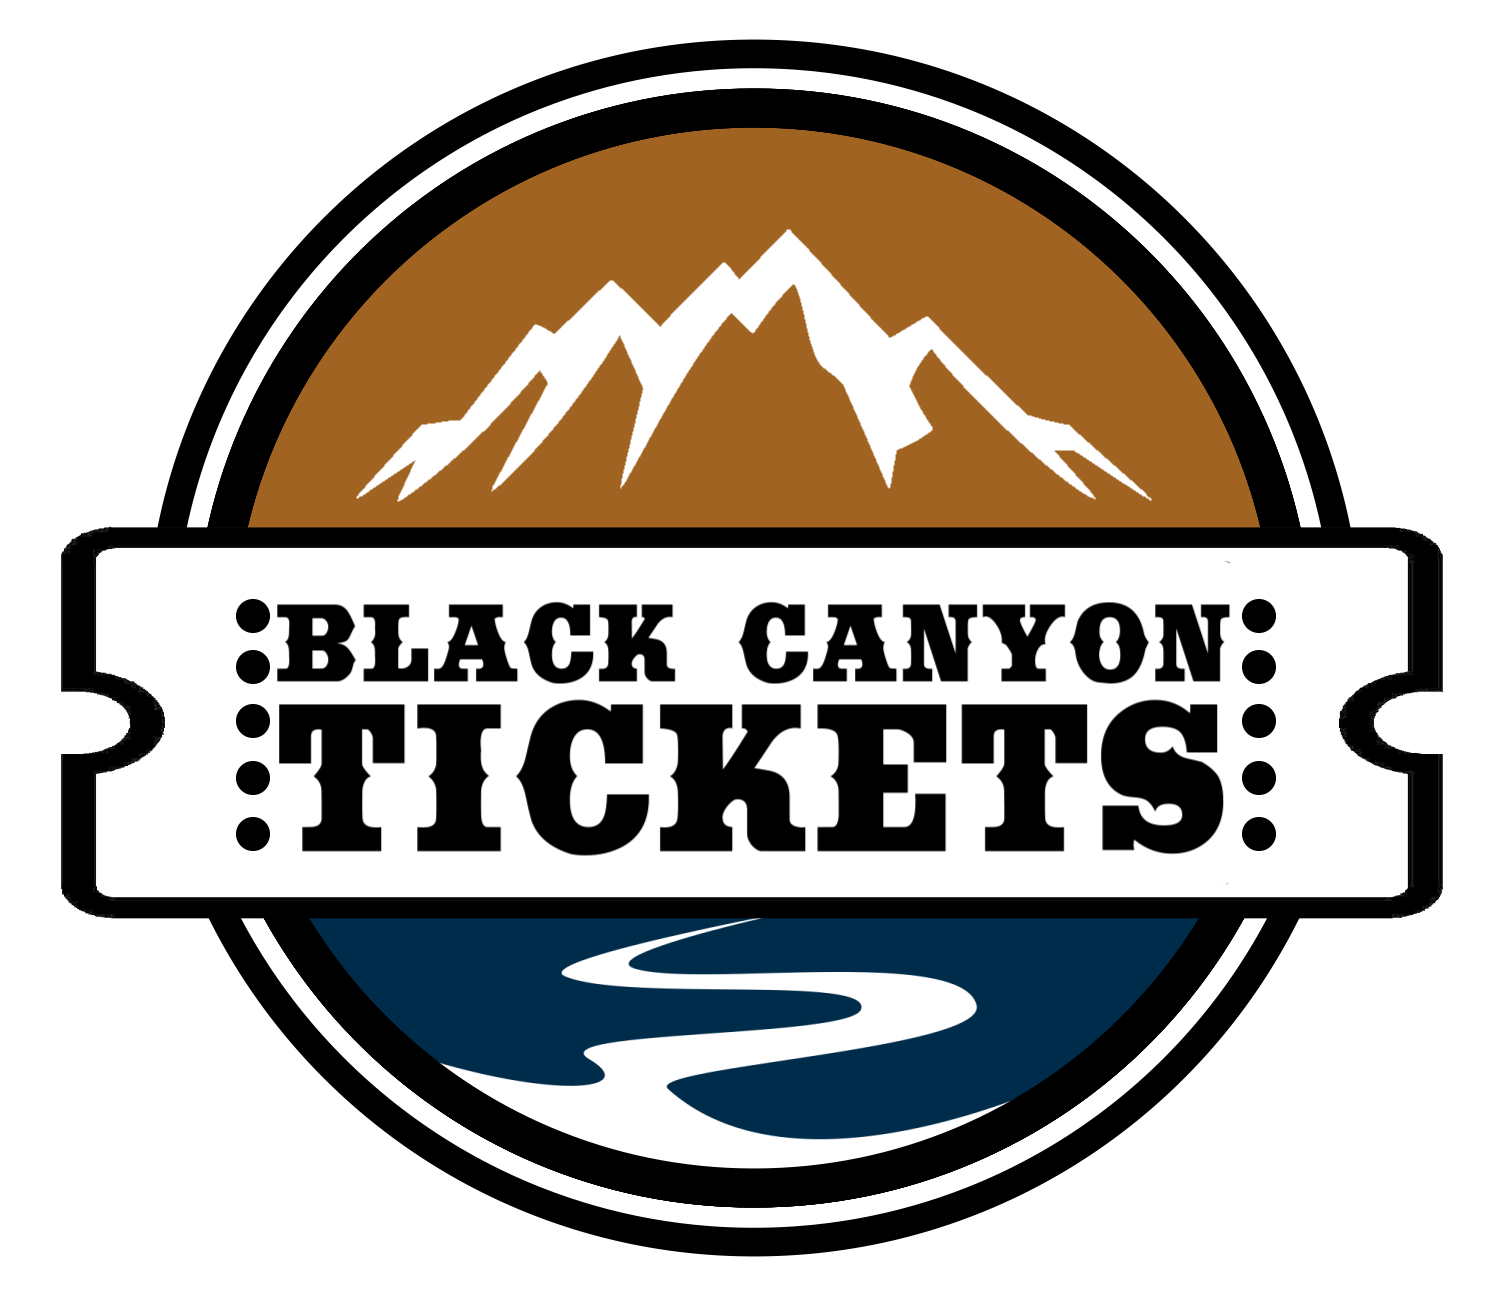 Checkout - Black Canyon Tickets